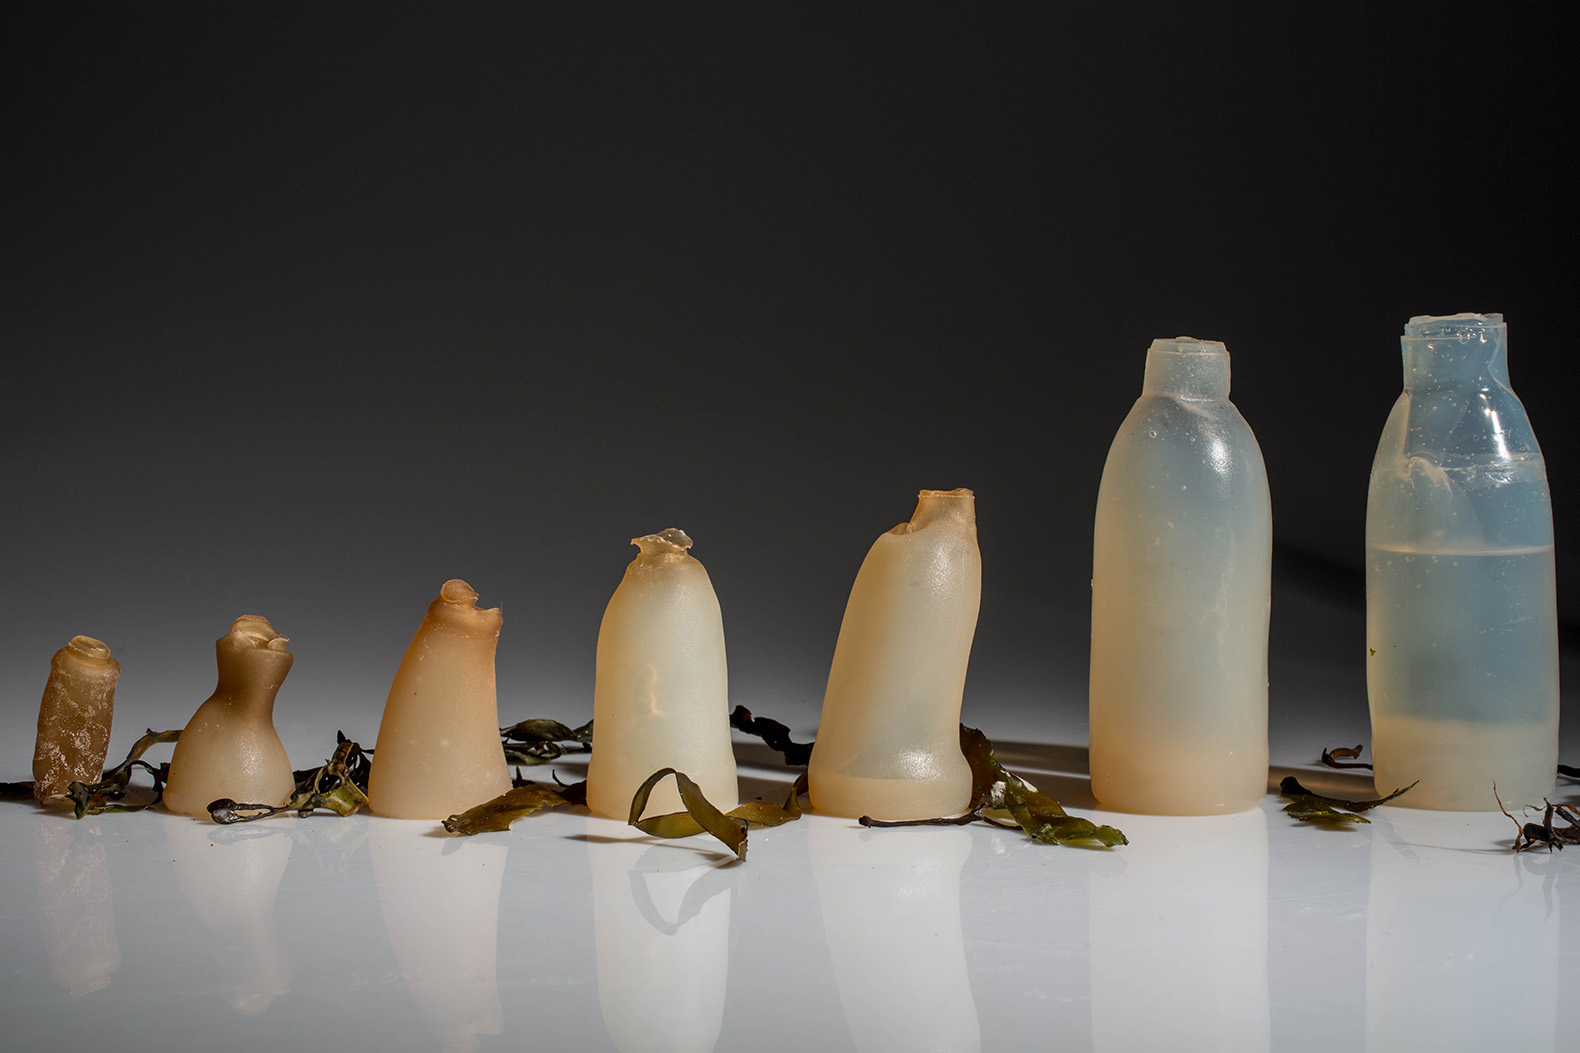 Biodegradable algae water bottles provide a green alternative to plastic